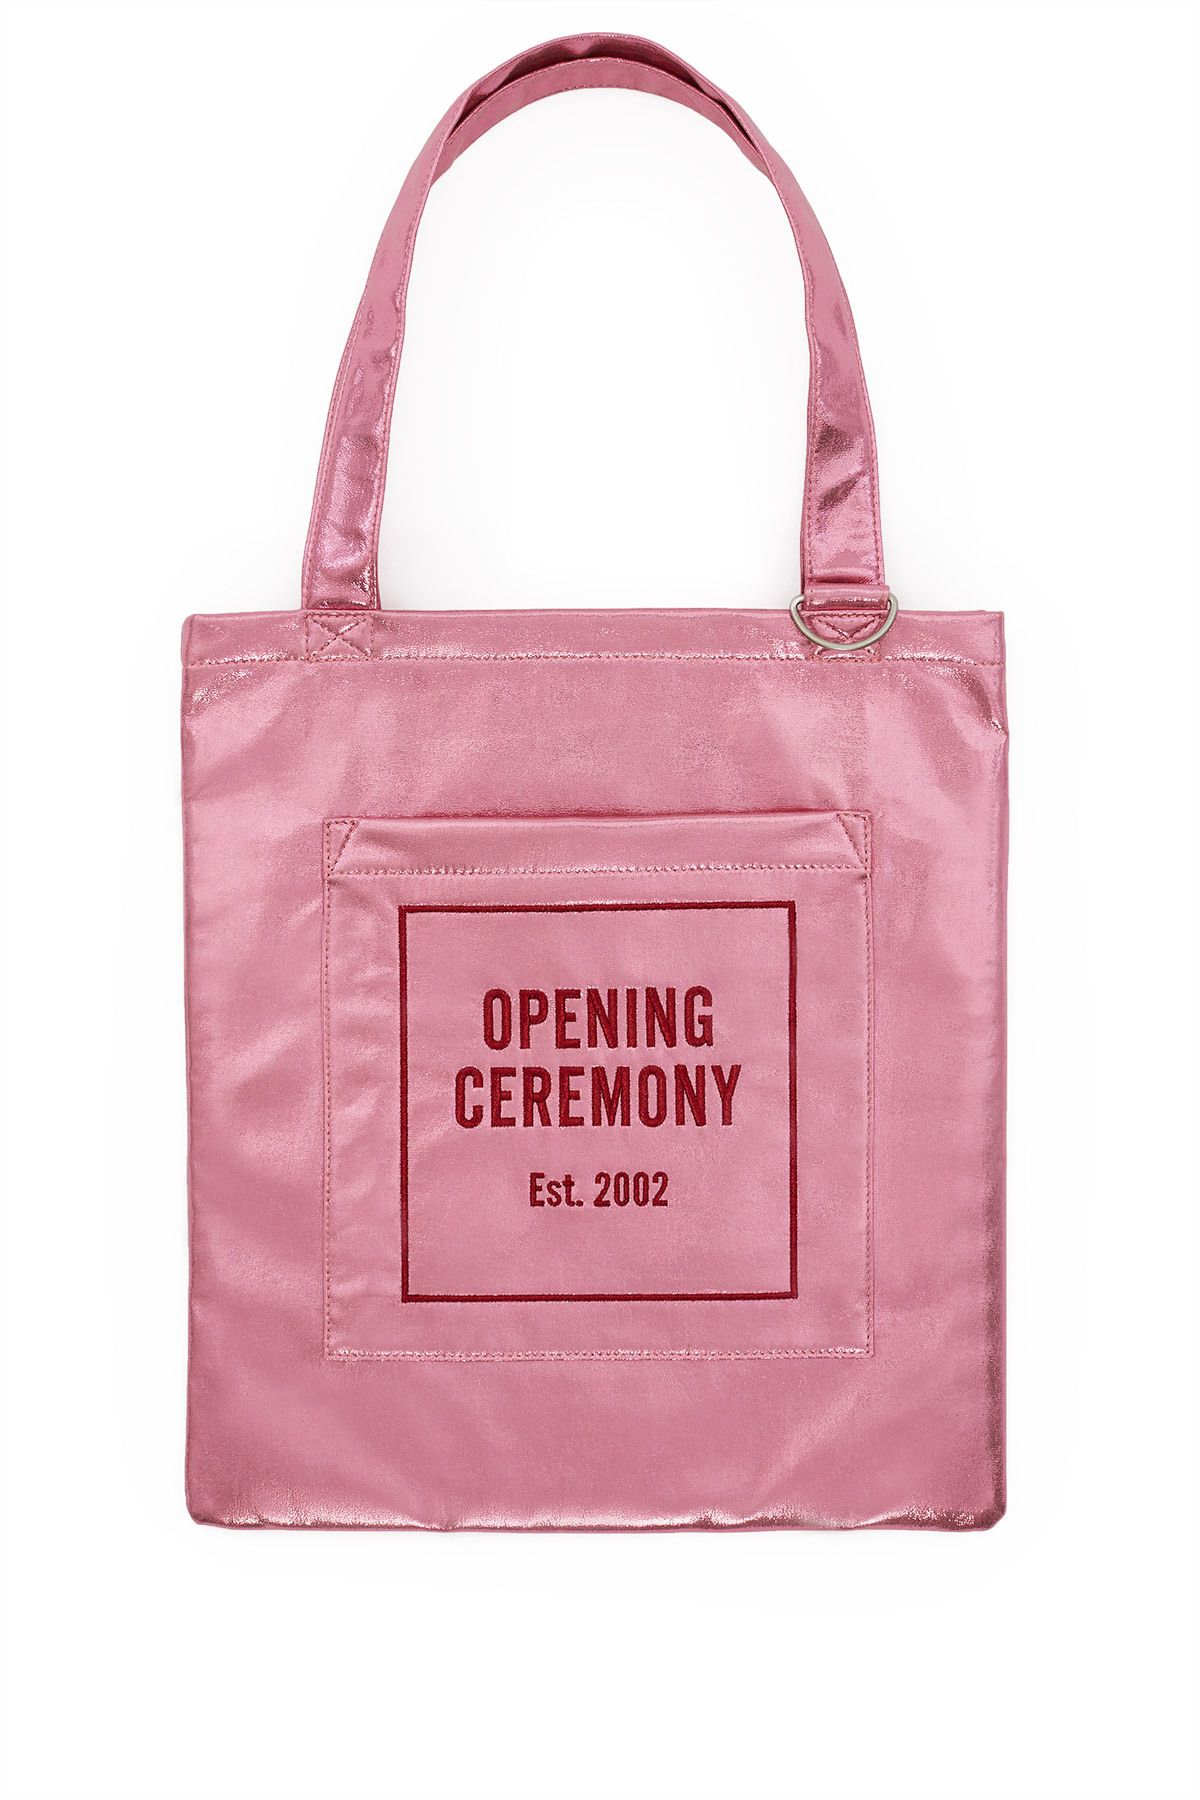 Opening Ceremony Pink Glitter Tote Bag For Summer 2017